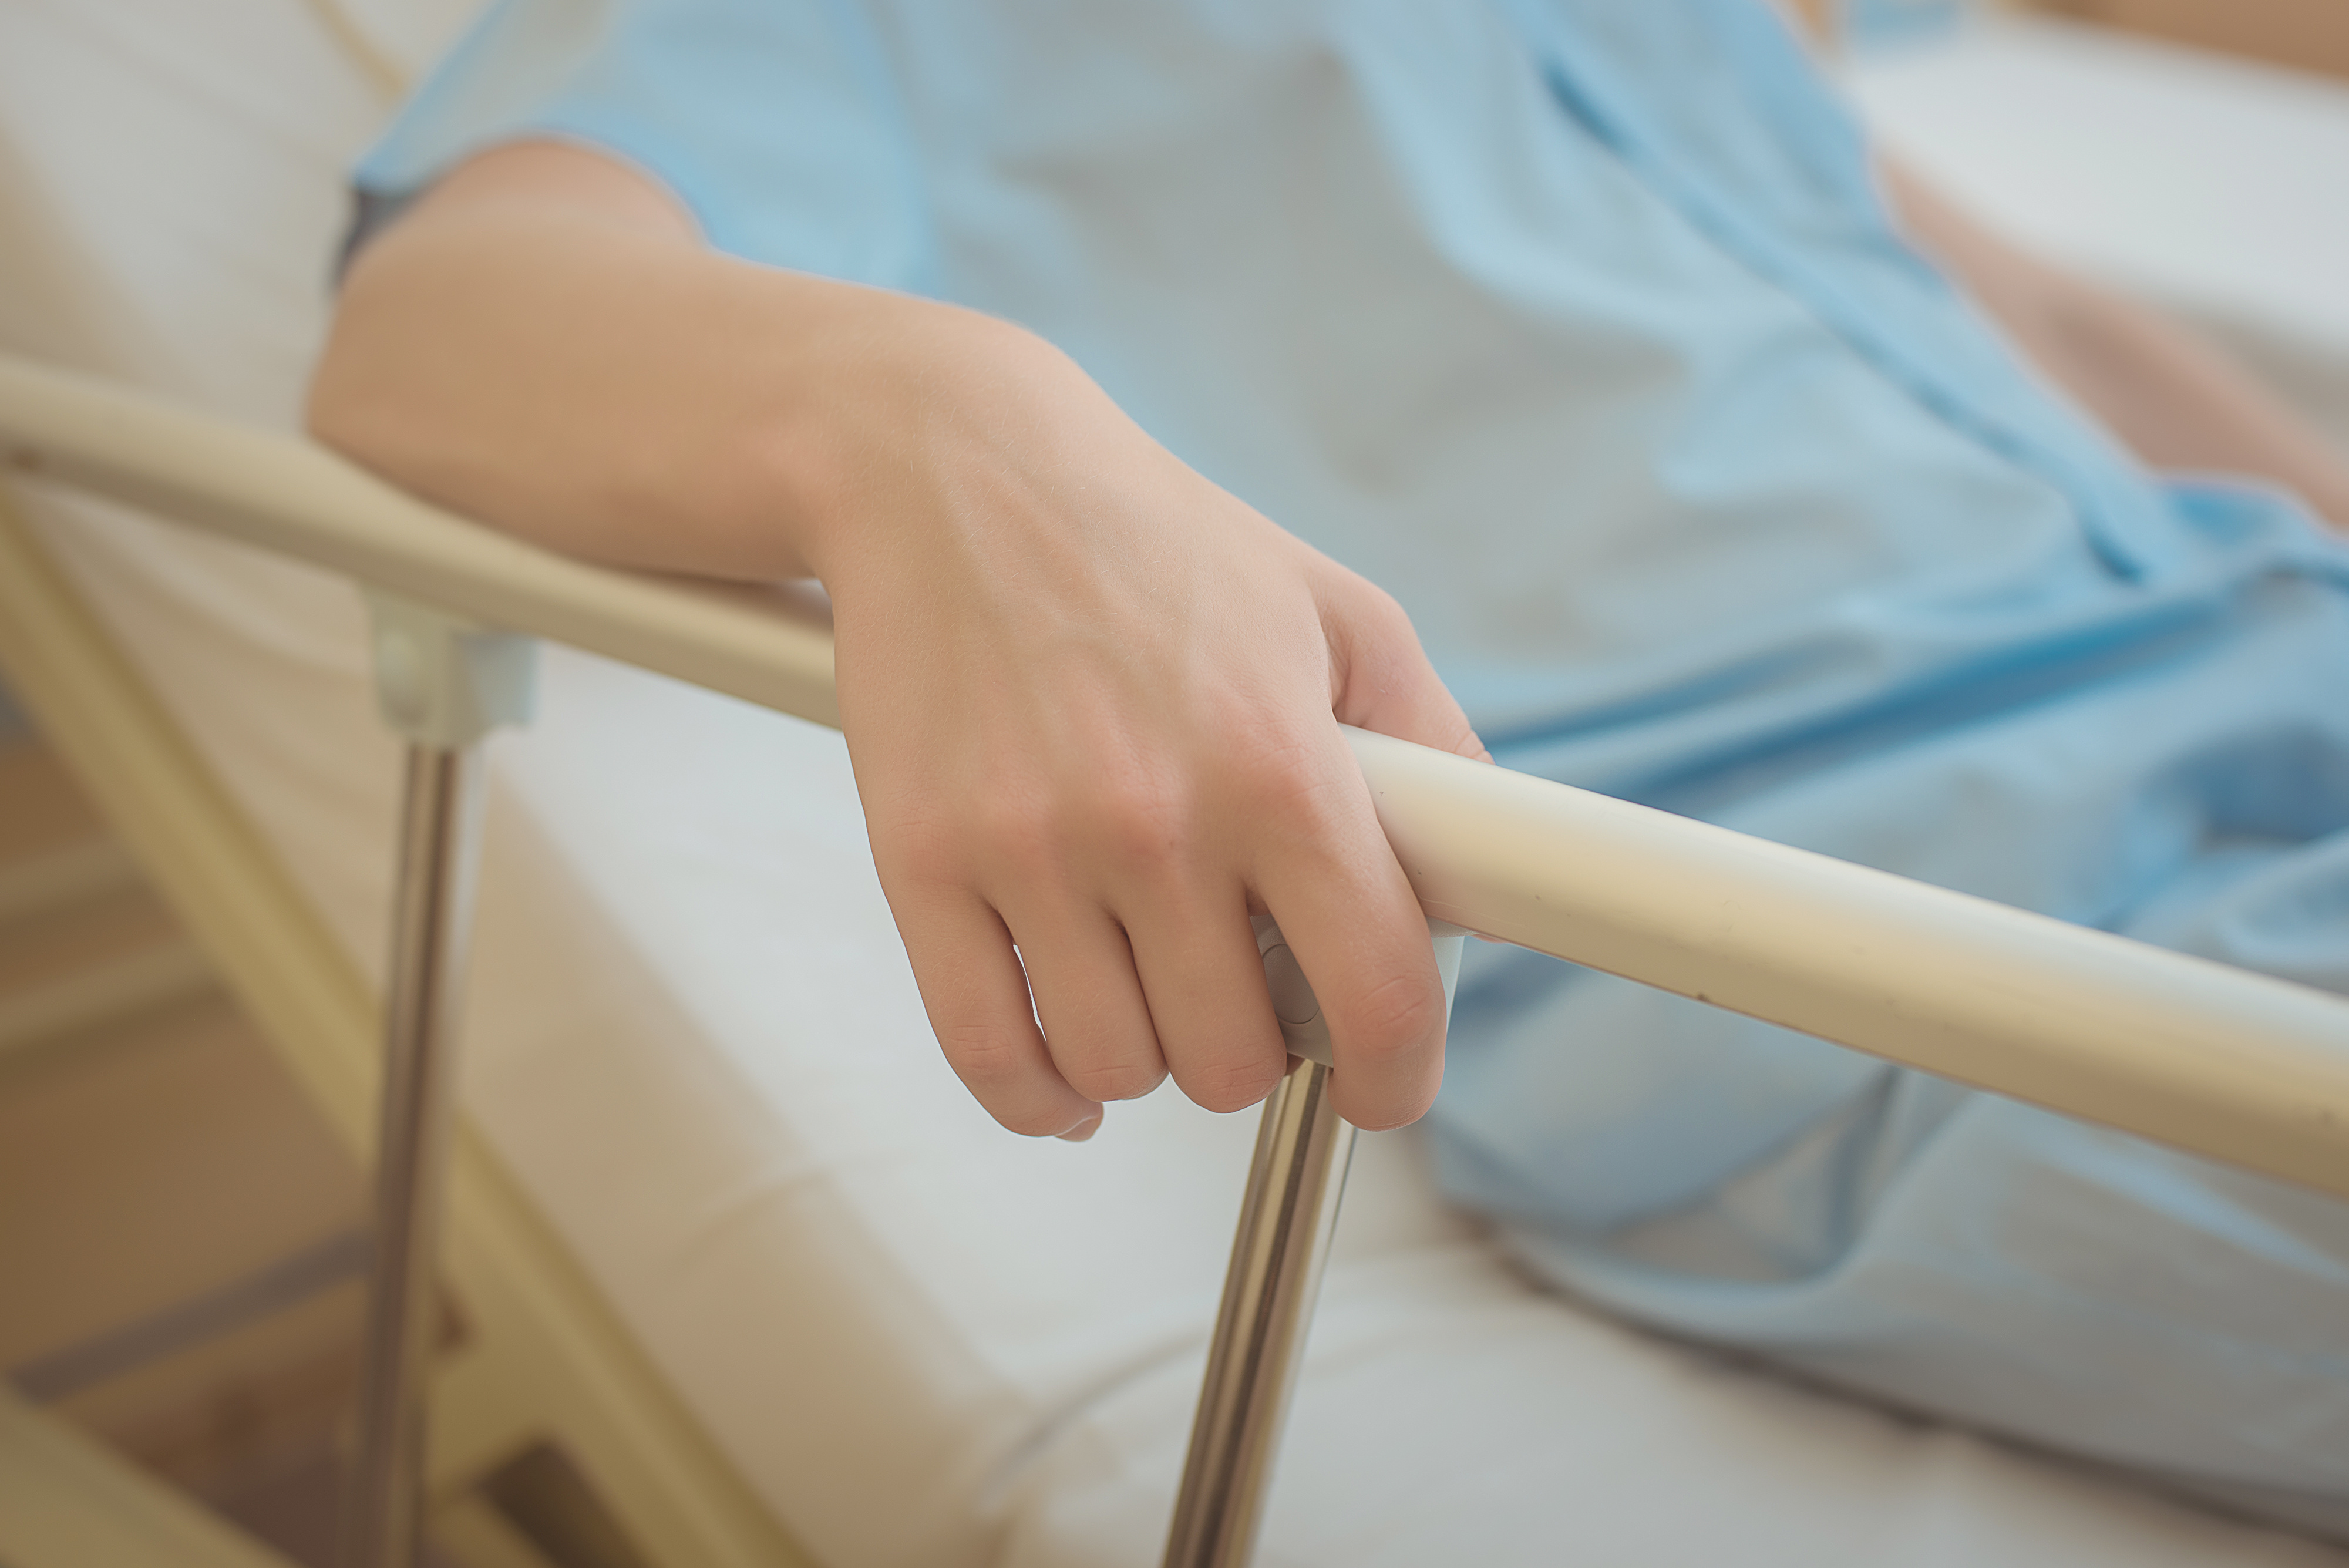 pressure ulcers patient's arm holding on to the bed